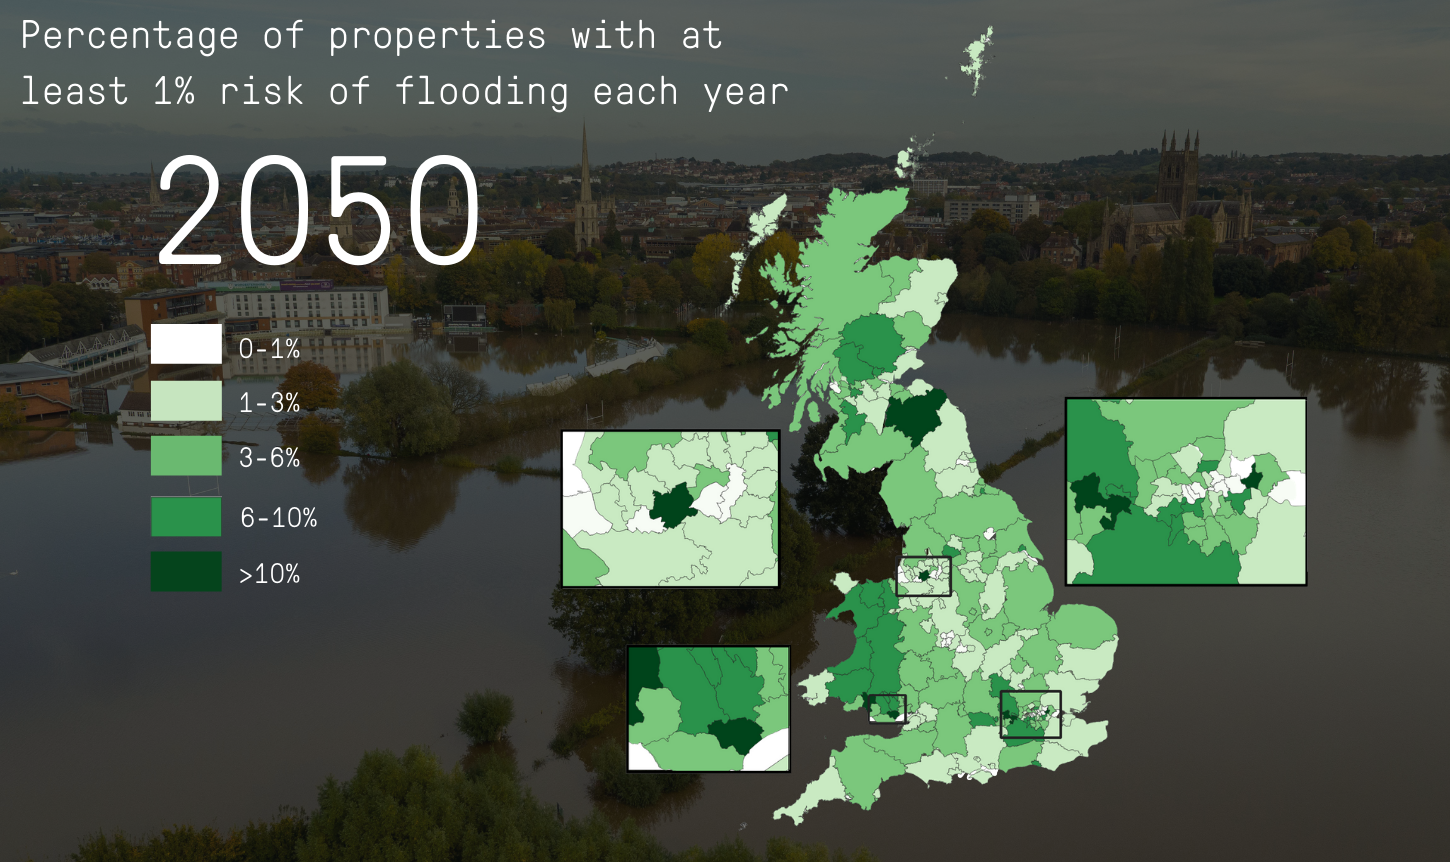 By 2050, properties at risk of flooding will increase by 24%. This chart demonstrates that.